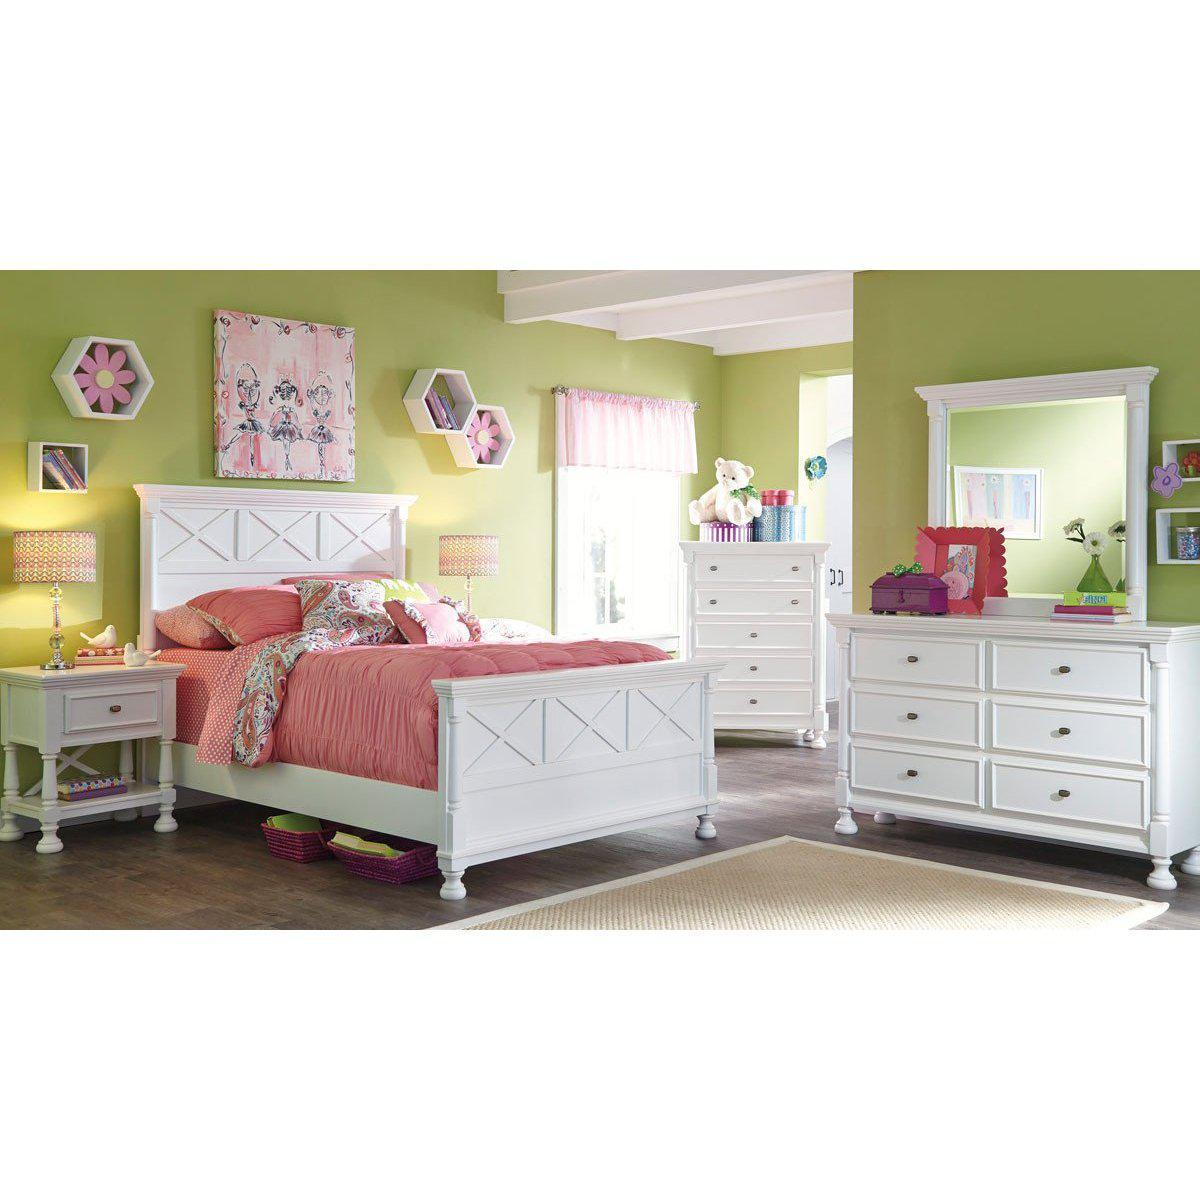 Kai Bedroom Set